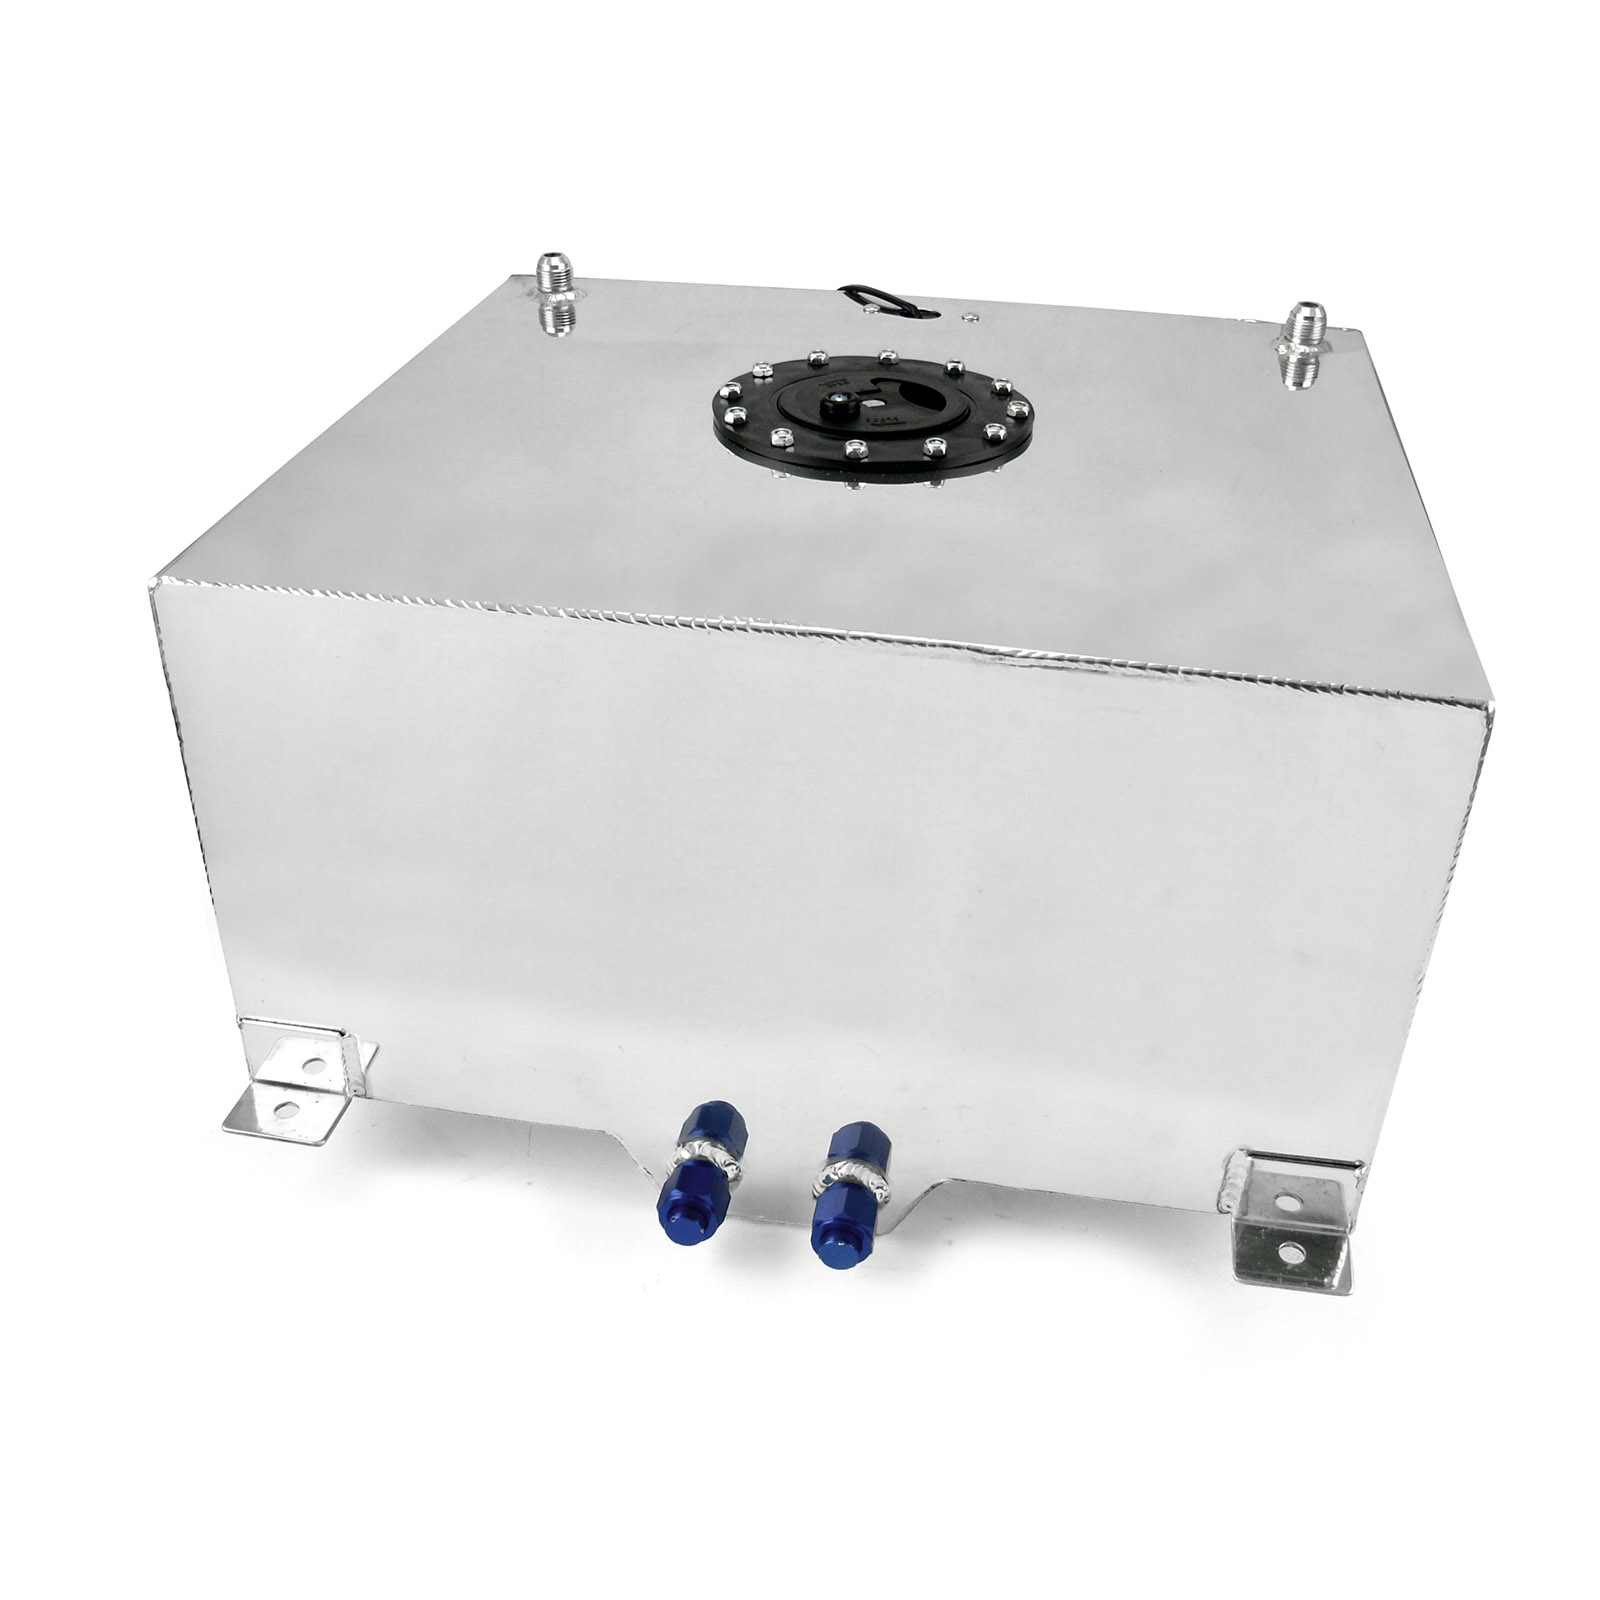 13 Gallon / 50 Litre Lightweight Polished Aluminum Fuel Cell w/ Sender